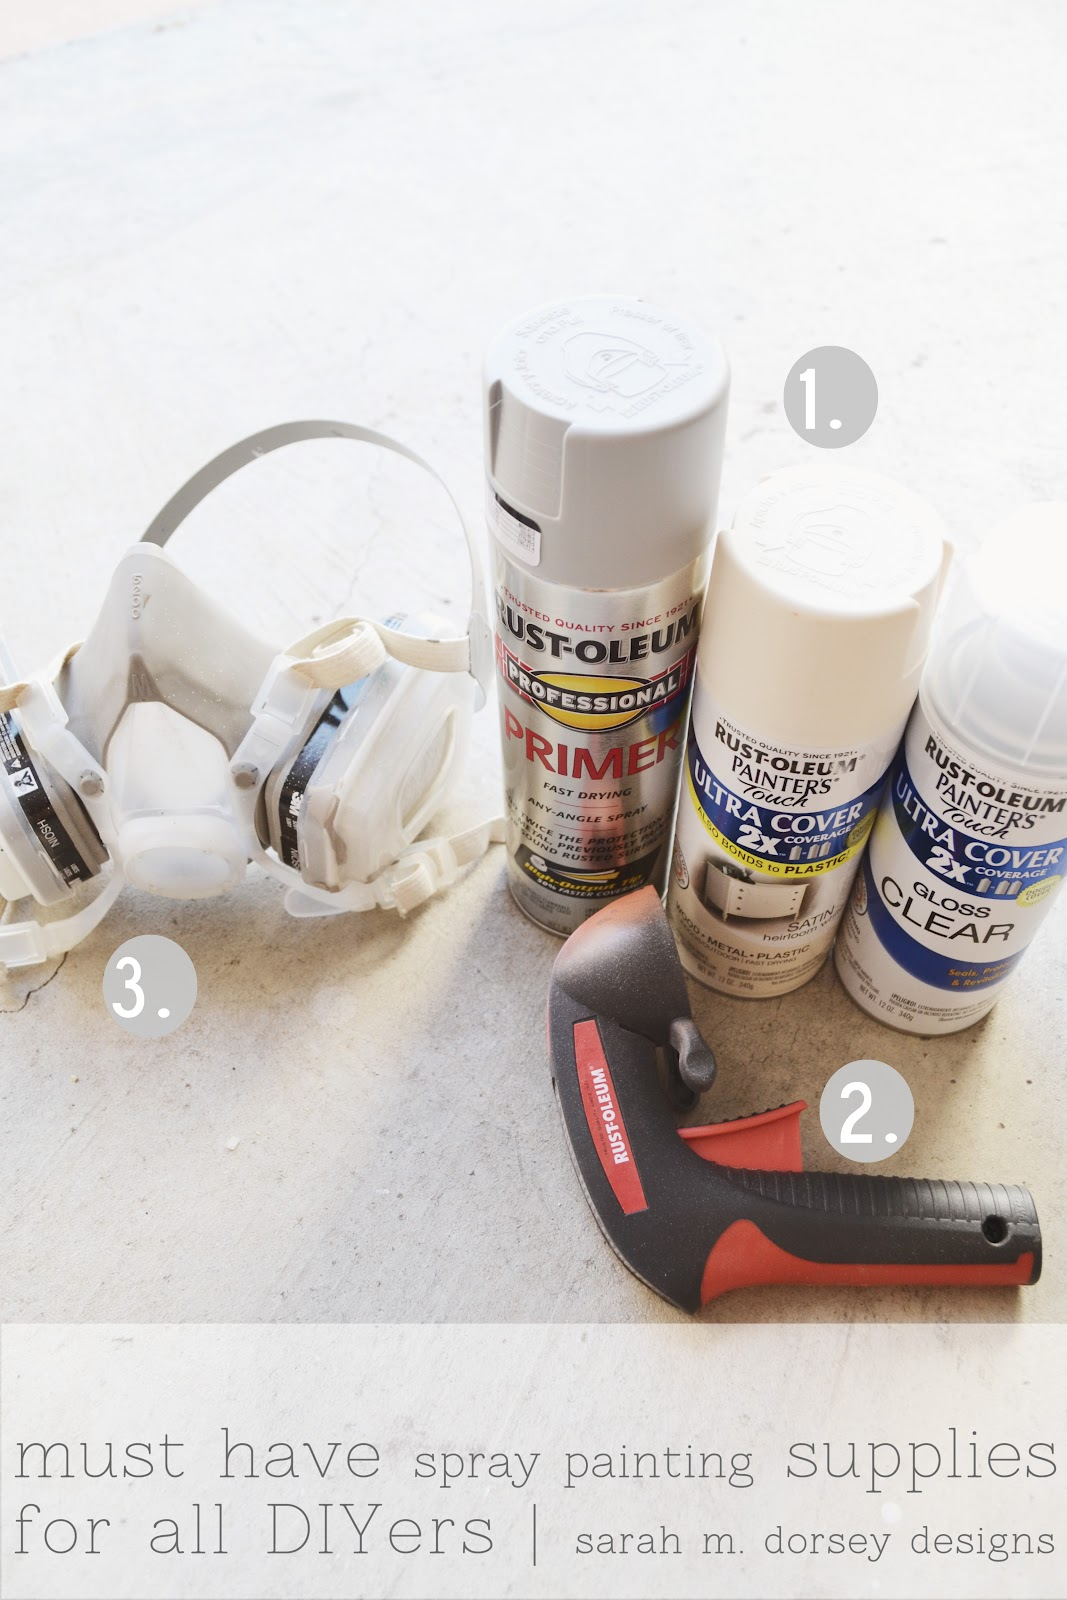 Sarah m dorsey designs my diy must haves painting Spray paint supplies